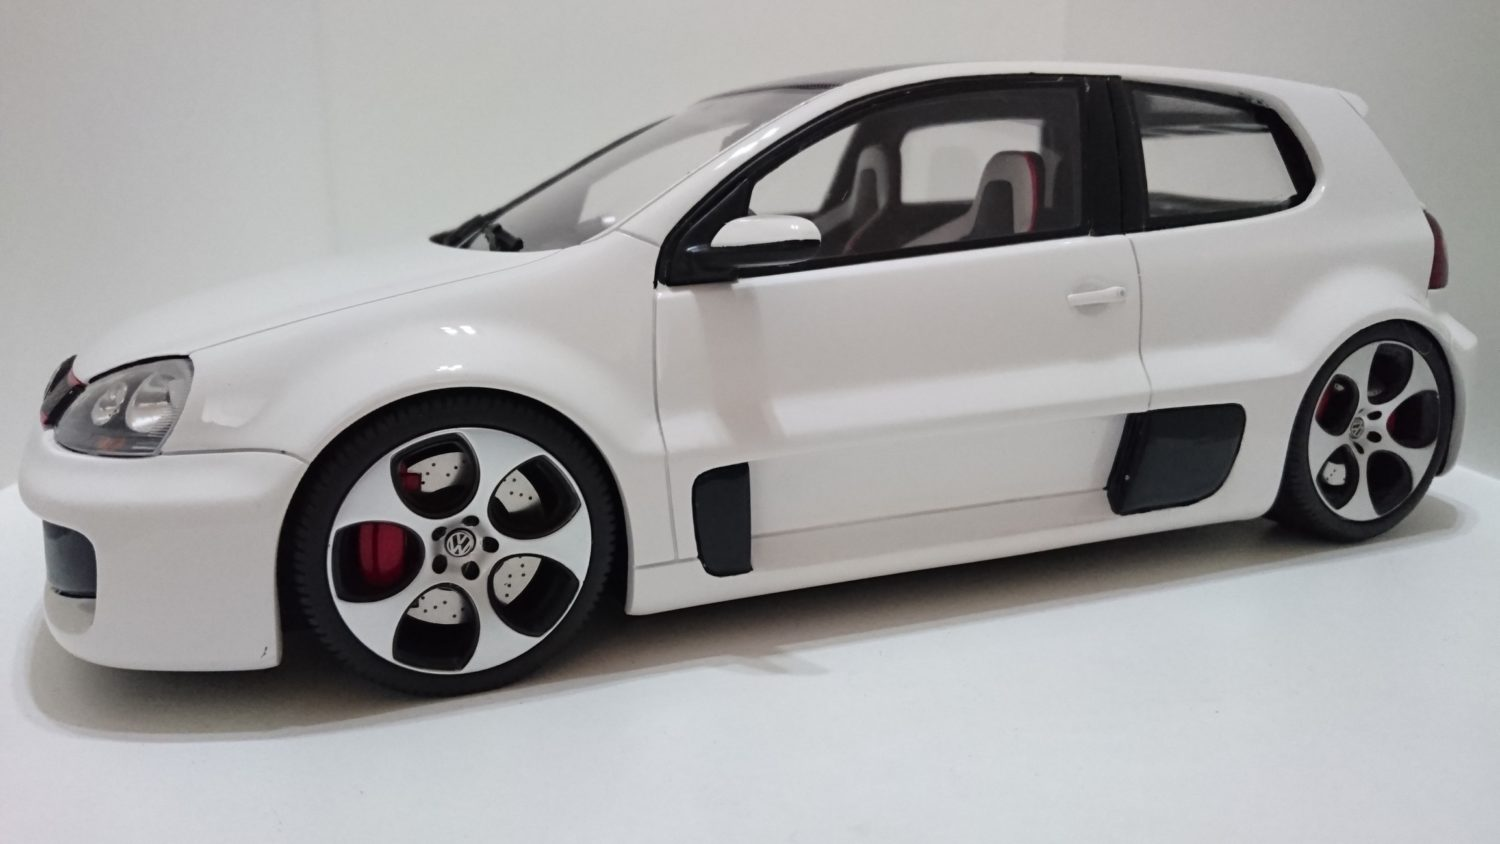 Electric Car Comparison >> Volkswagen Golf GTI May Have Over 300 Horsepower - Motor ...